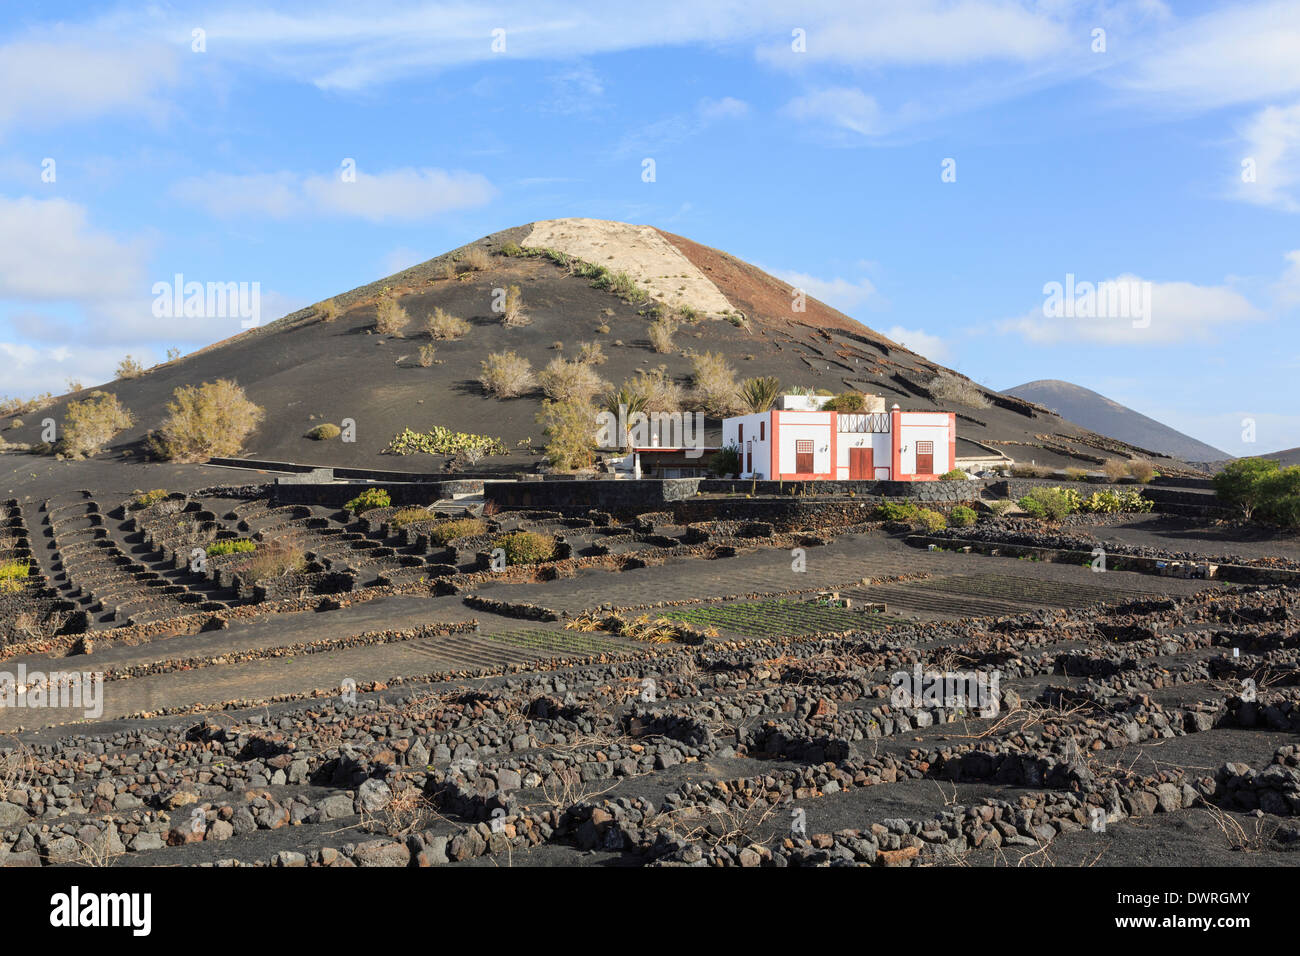 Winery beyond a field of vines growing in volcanic ash protected by walls in vineyards of La Geria, Lanzarote, Canary Islands - Stock Image